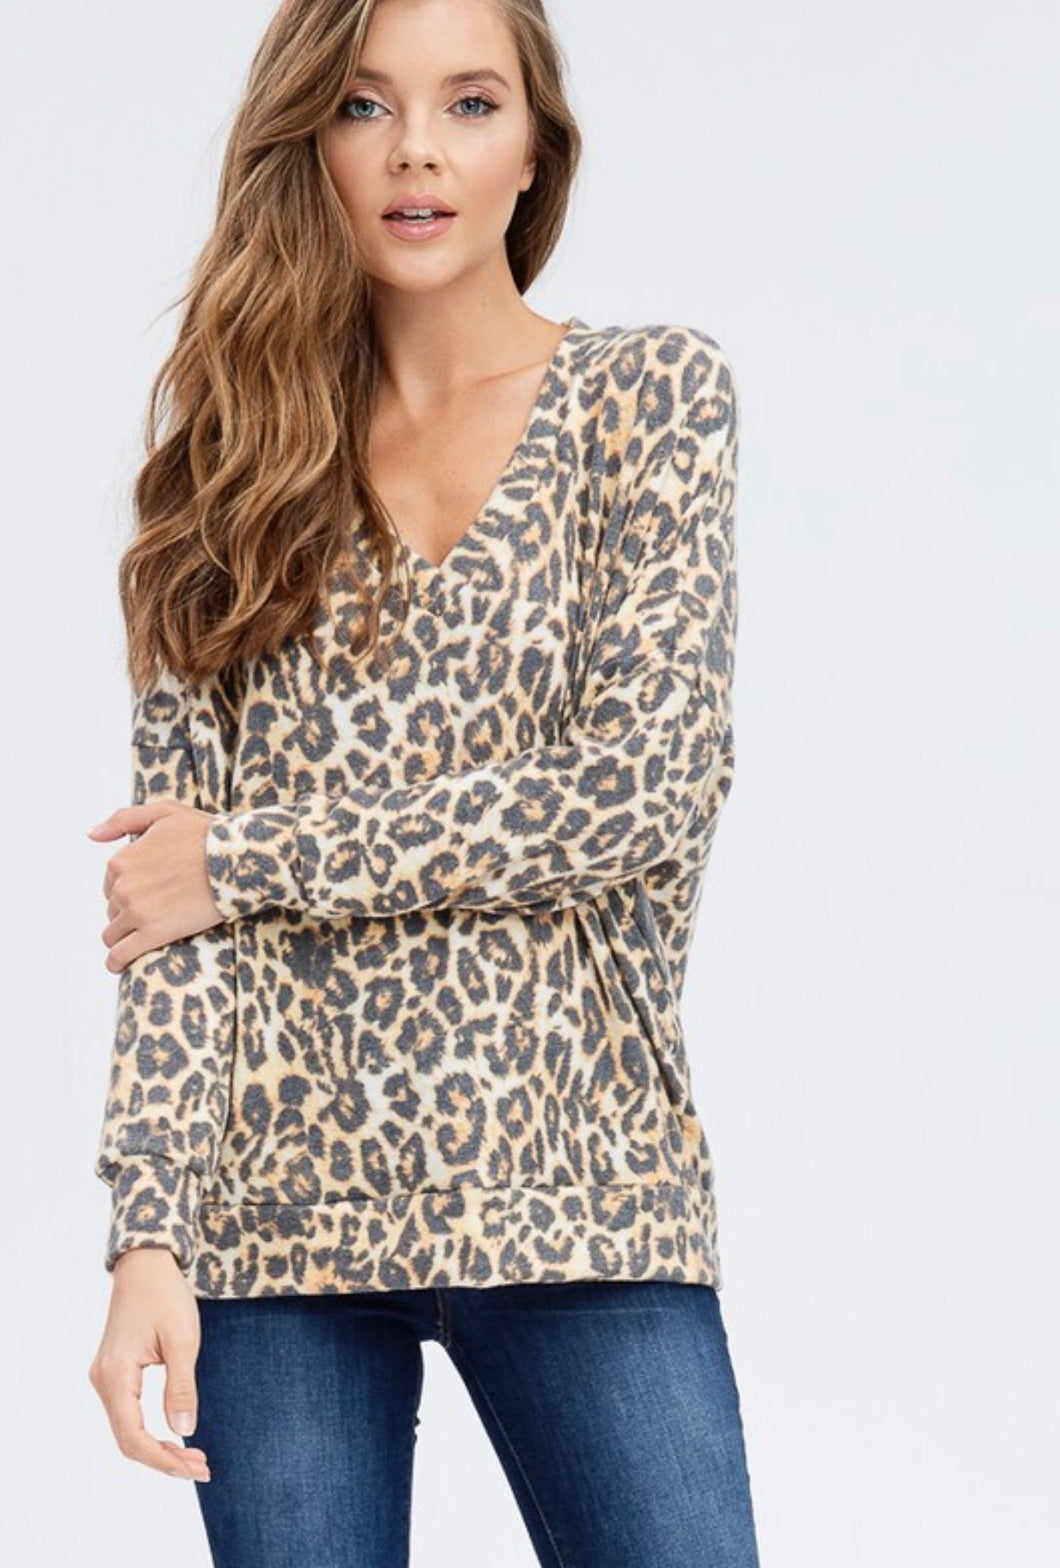 Chloe V-Neck Brushed Cheetah Top